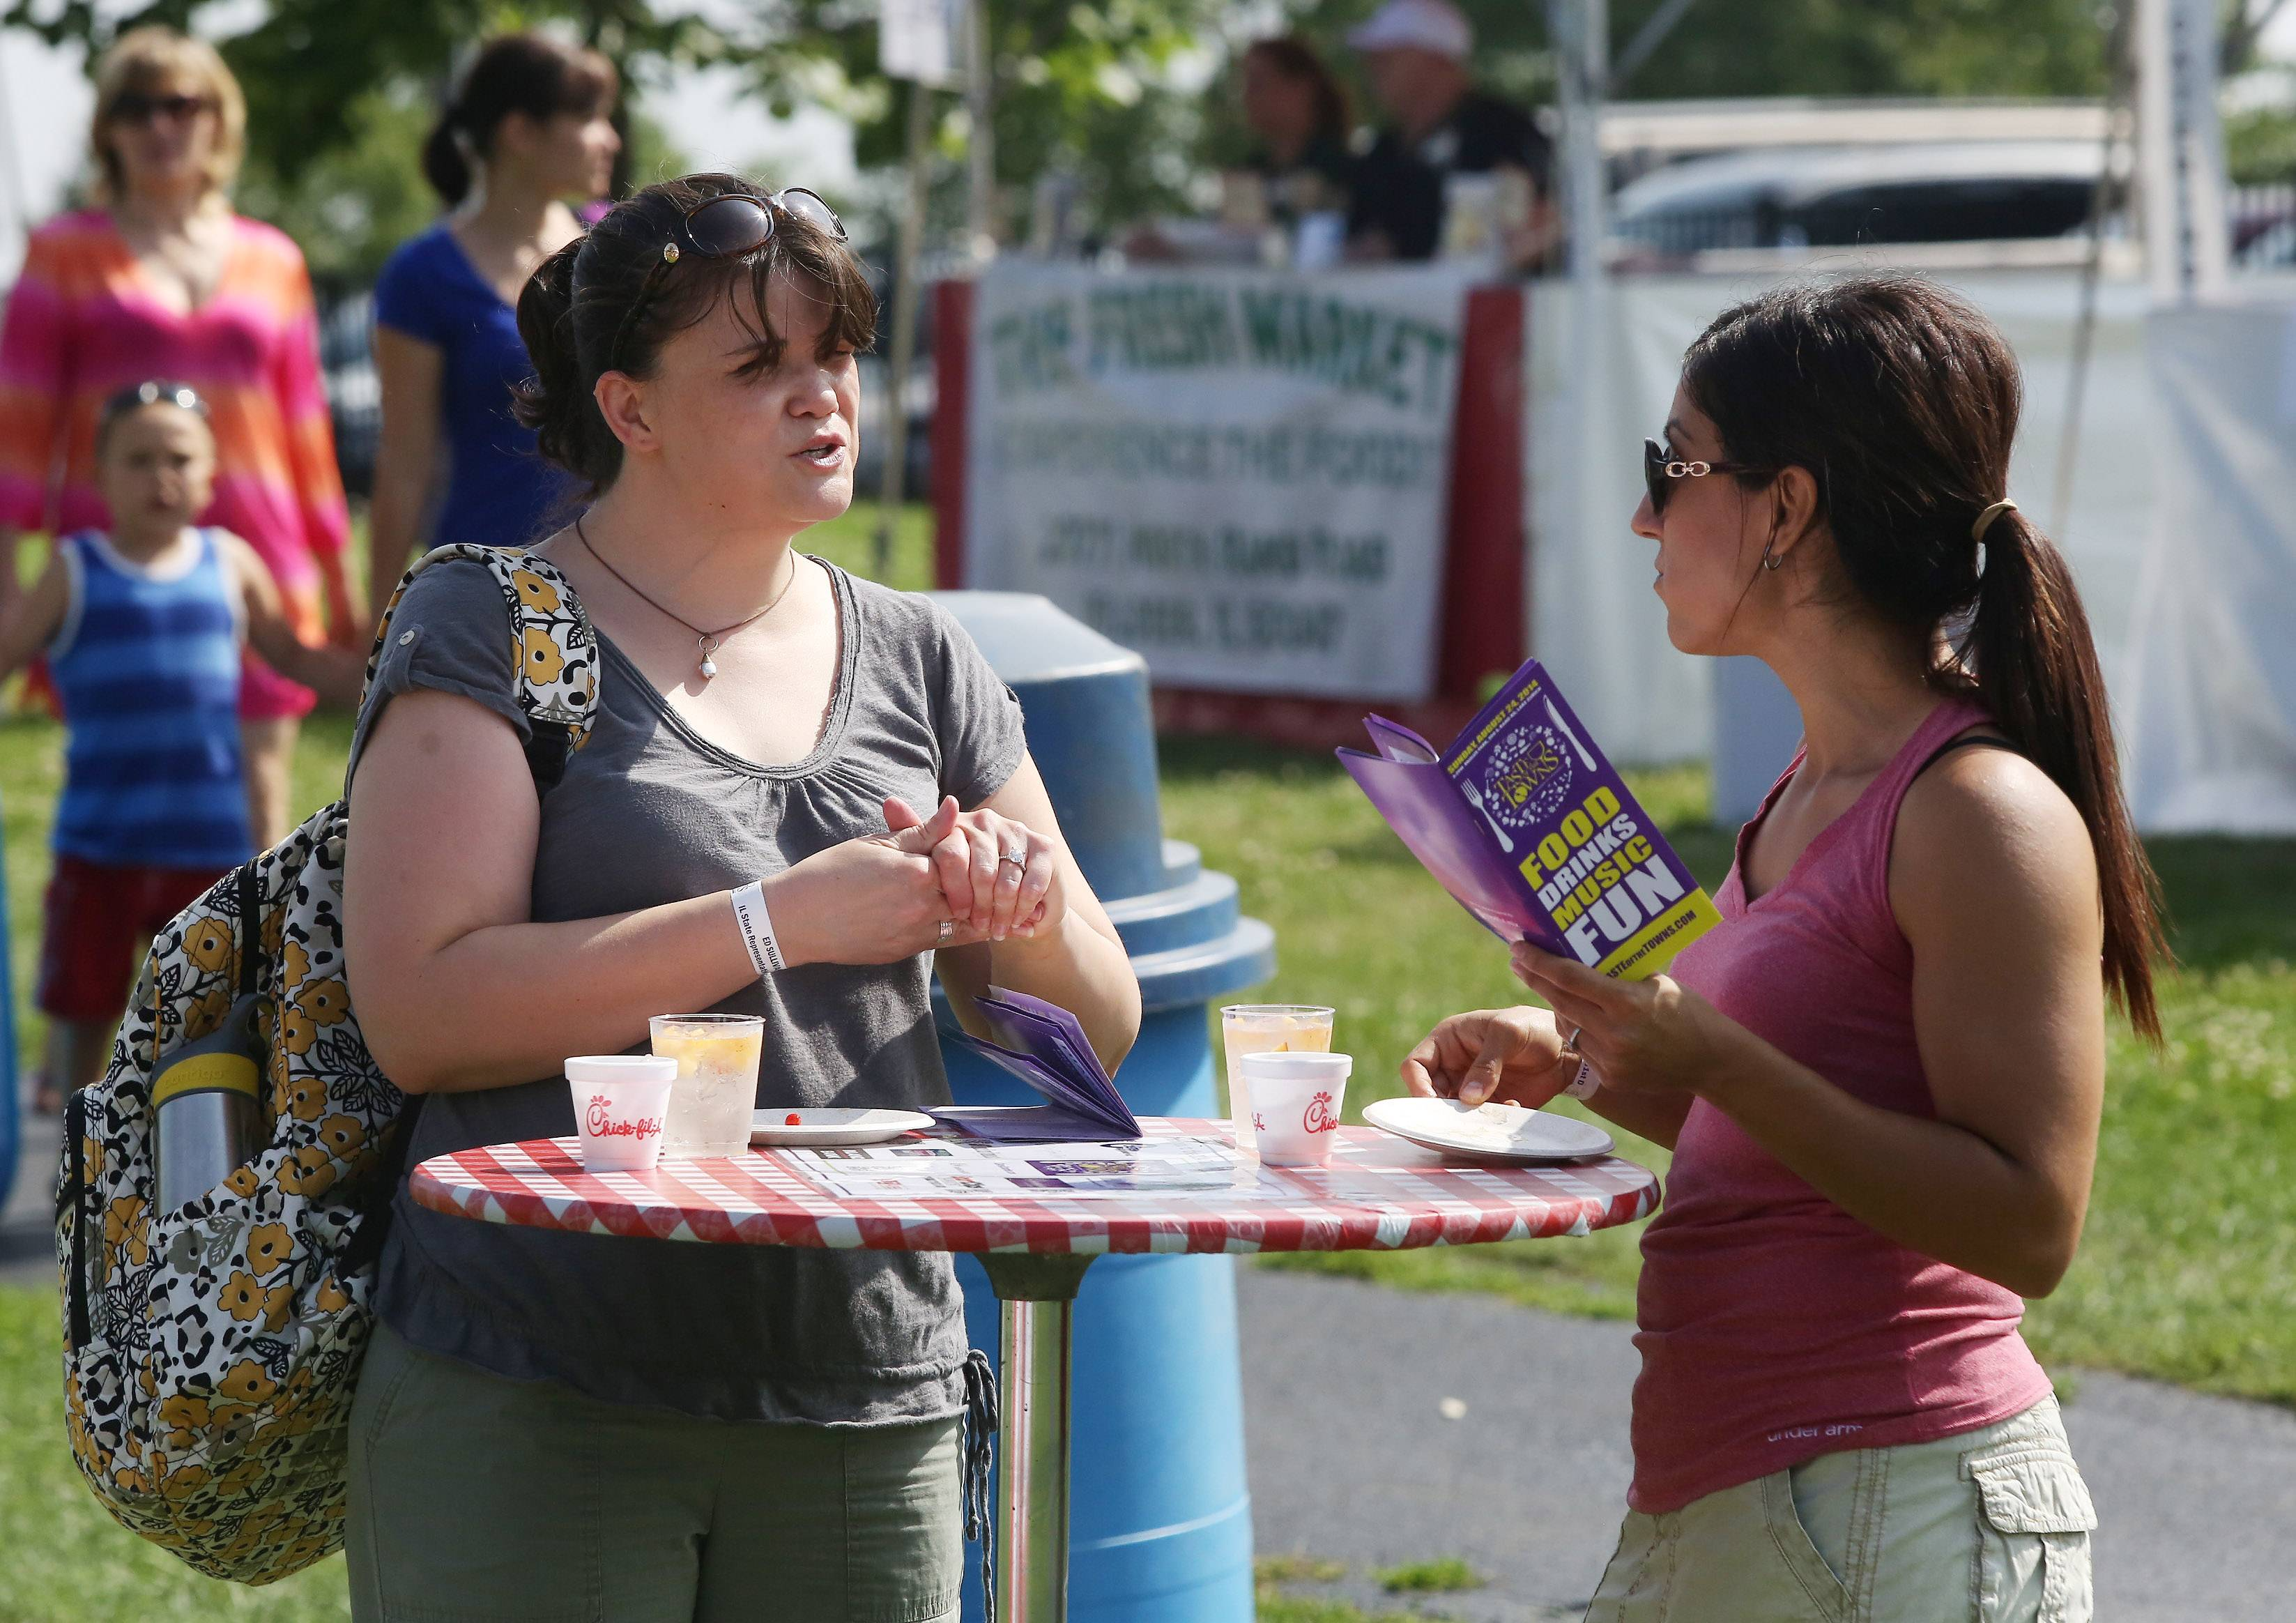 Gloria Beck of Lake Zurich, left, and Nora Wennerstrom of Libertyville sample food and drinks Sunday during the 8th annual Lake Zurich Area Chamber of Commerce Taste of the Towns at Paulus Park.